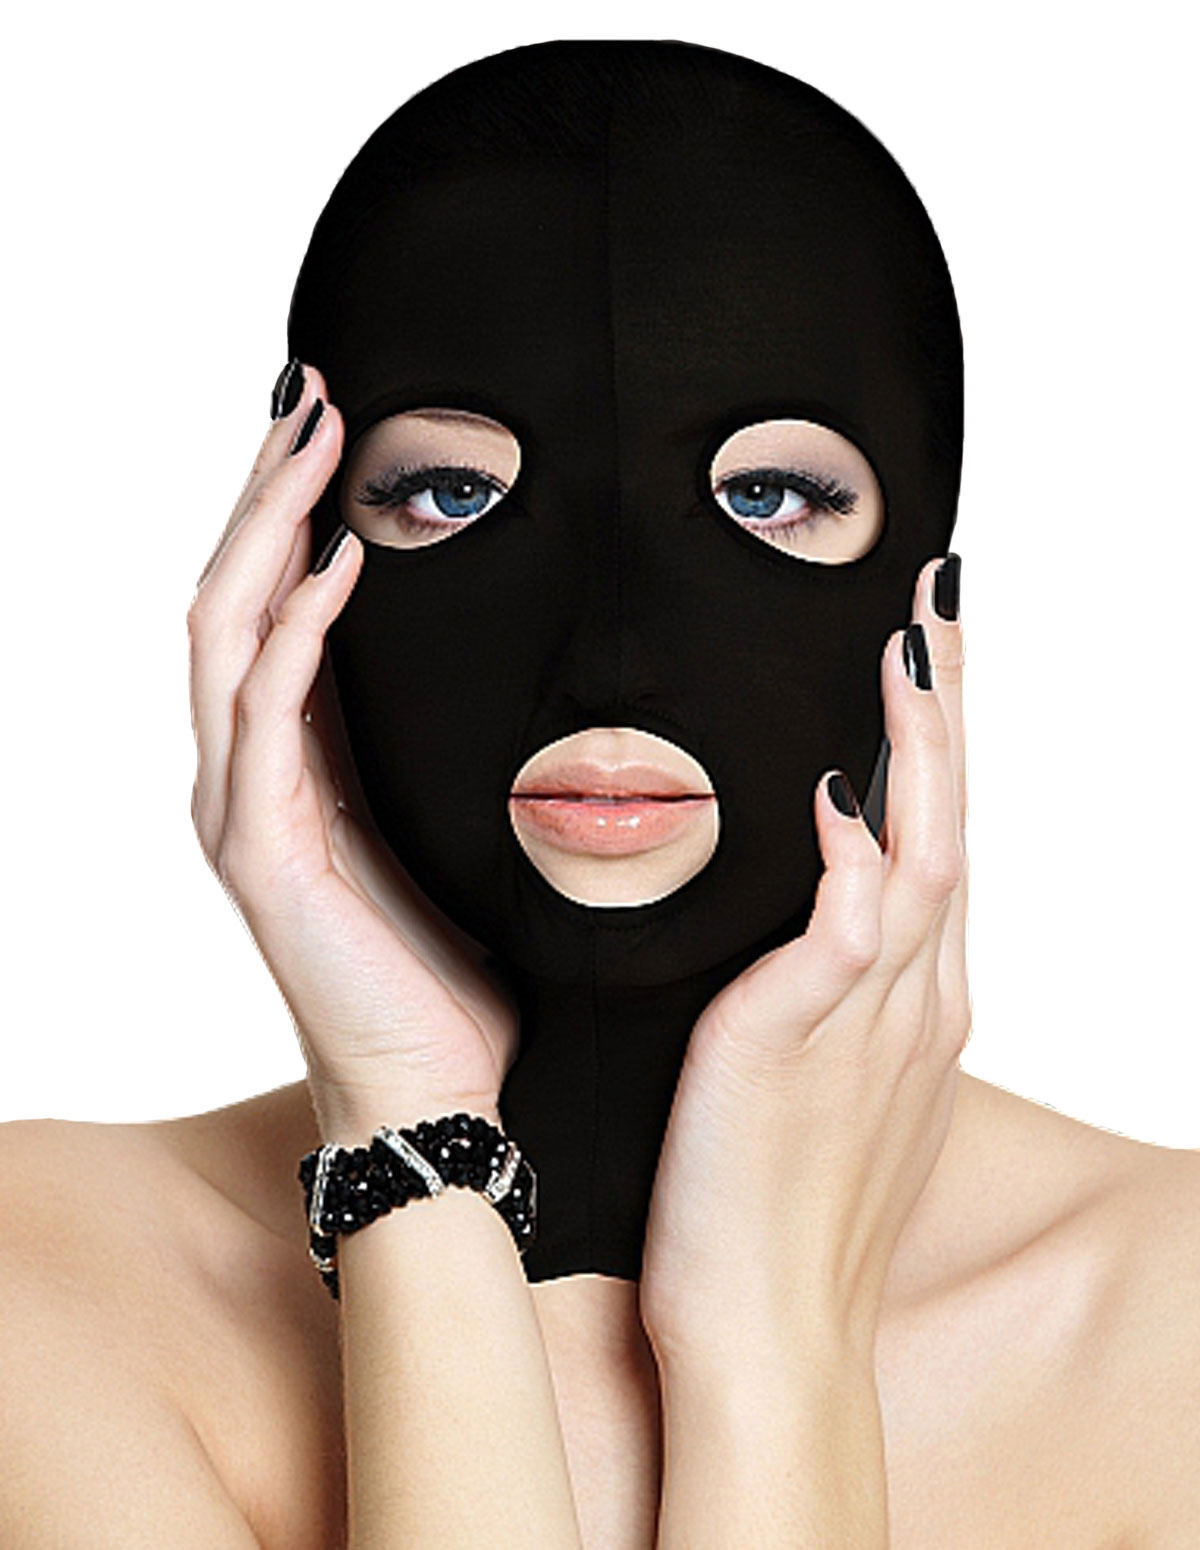 Subversion Mask With Eye & Mouth Opening